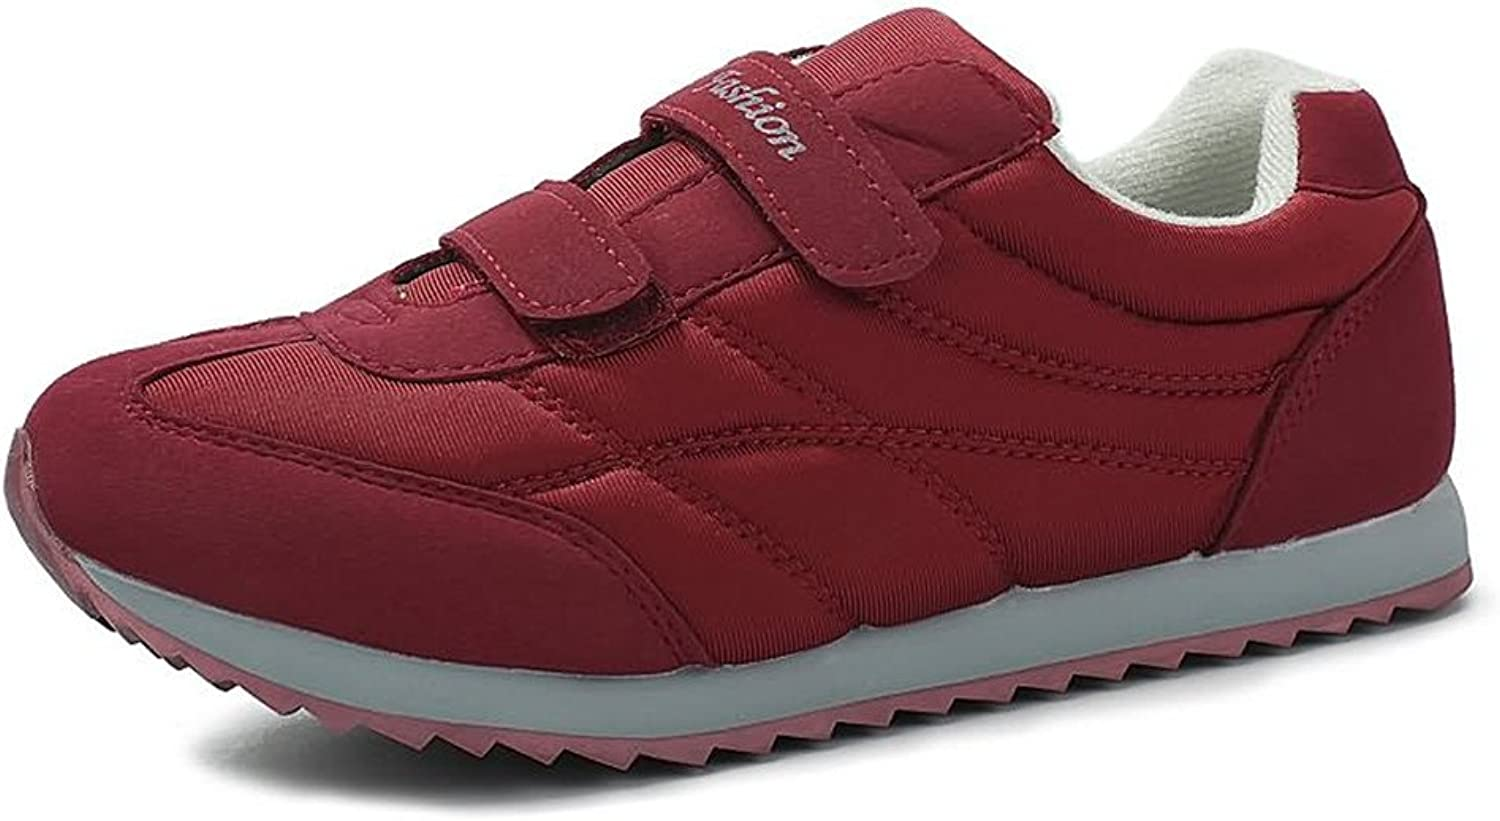 Battle Men Women & Men's Flat Heel Super Light Solid color Athletic shoes Fashion (color   Purplish red, Size   3.5 D(M) US Big Kid)